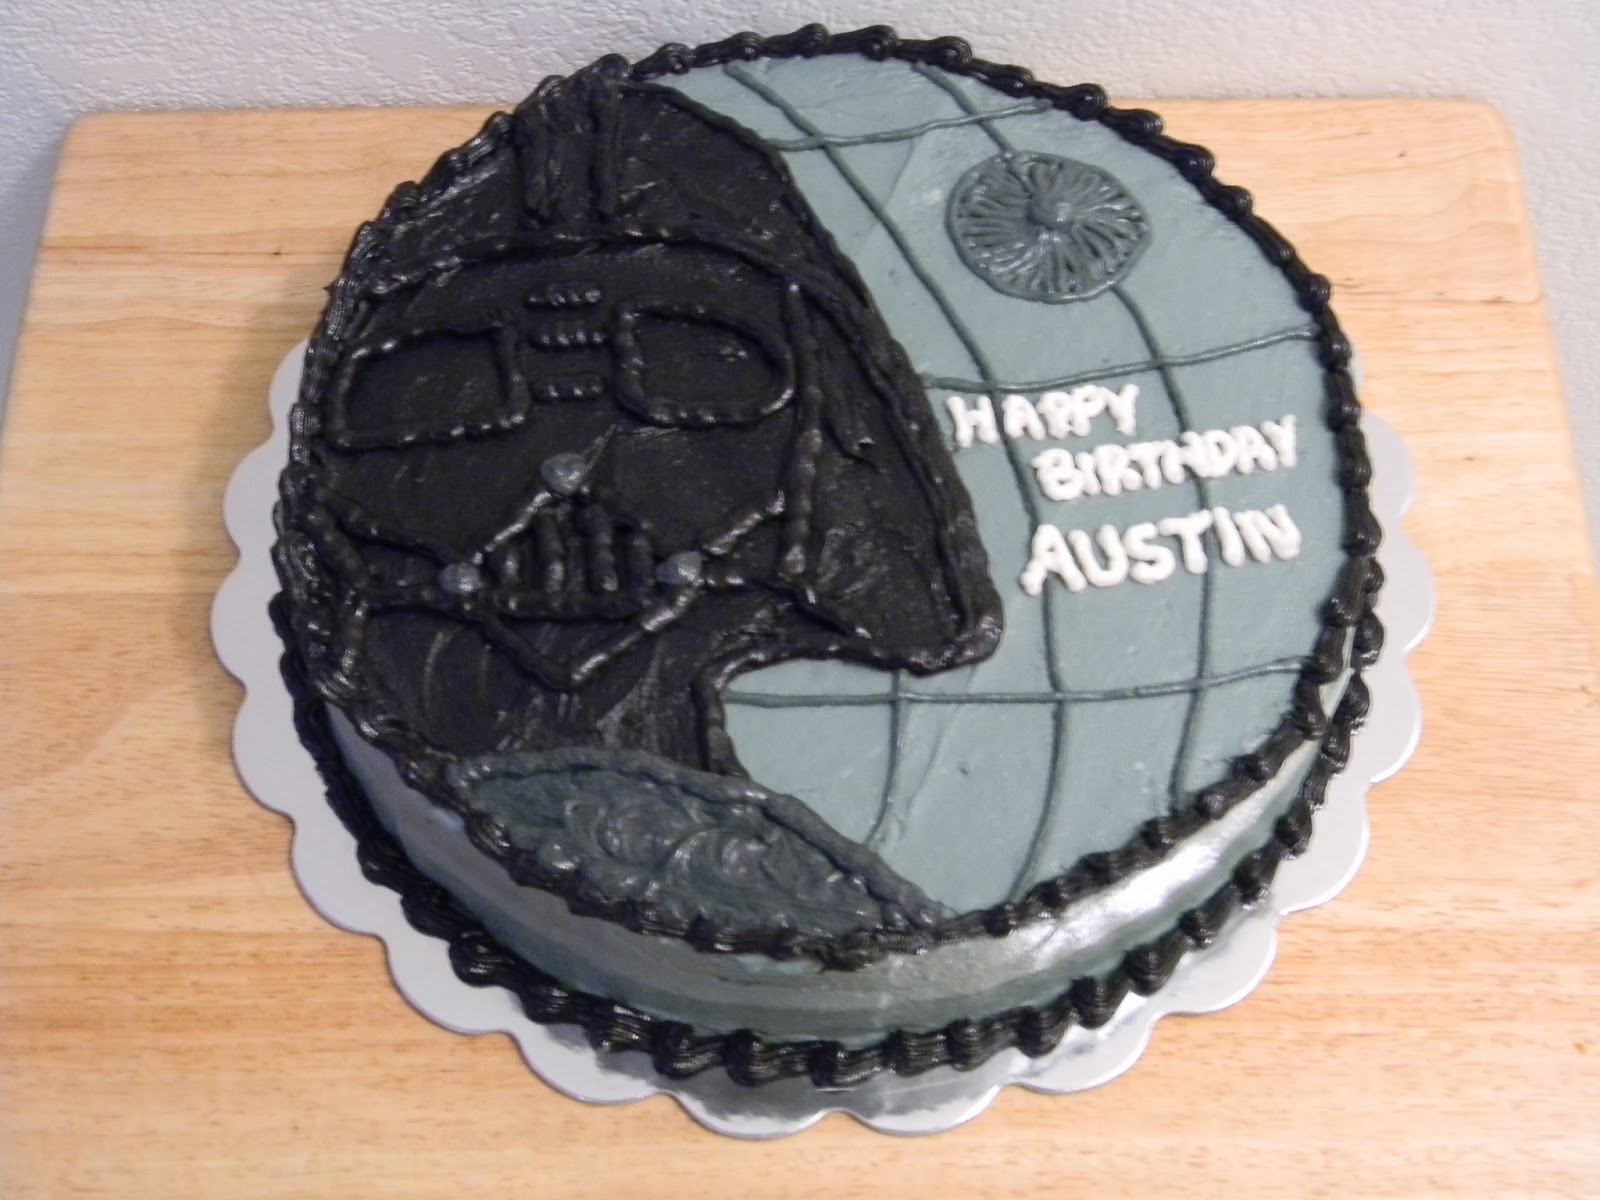 http://brandyscreations.blogspot.com/2014/02/darth-vader-and-death-star-cake.html